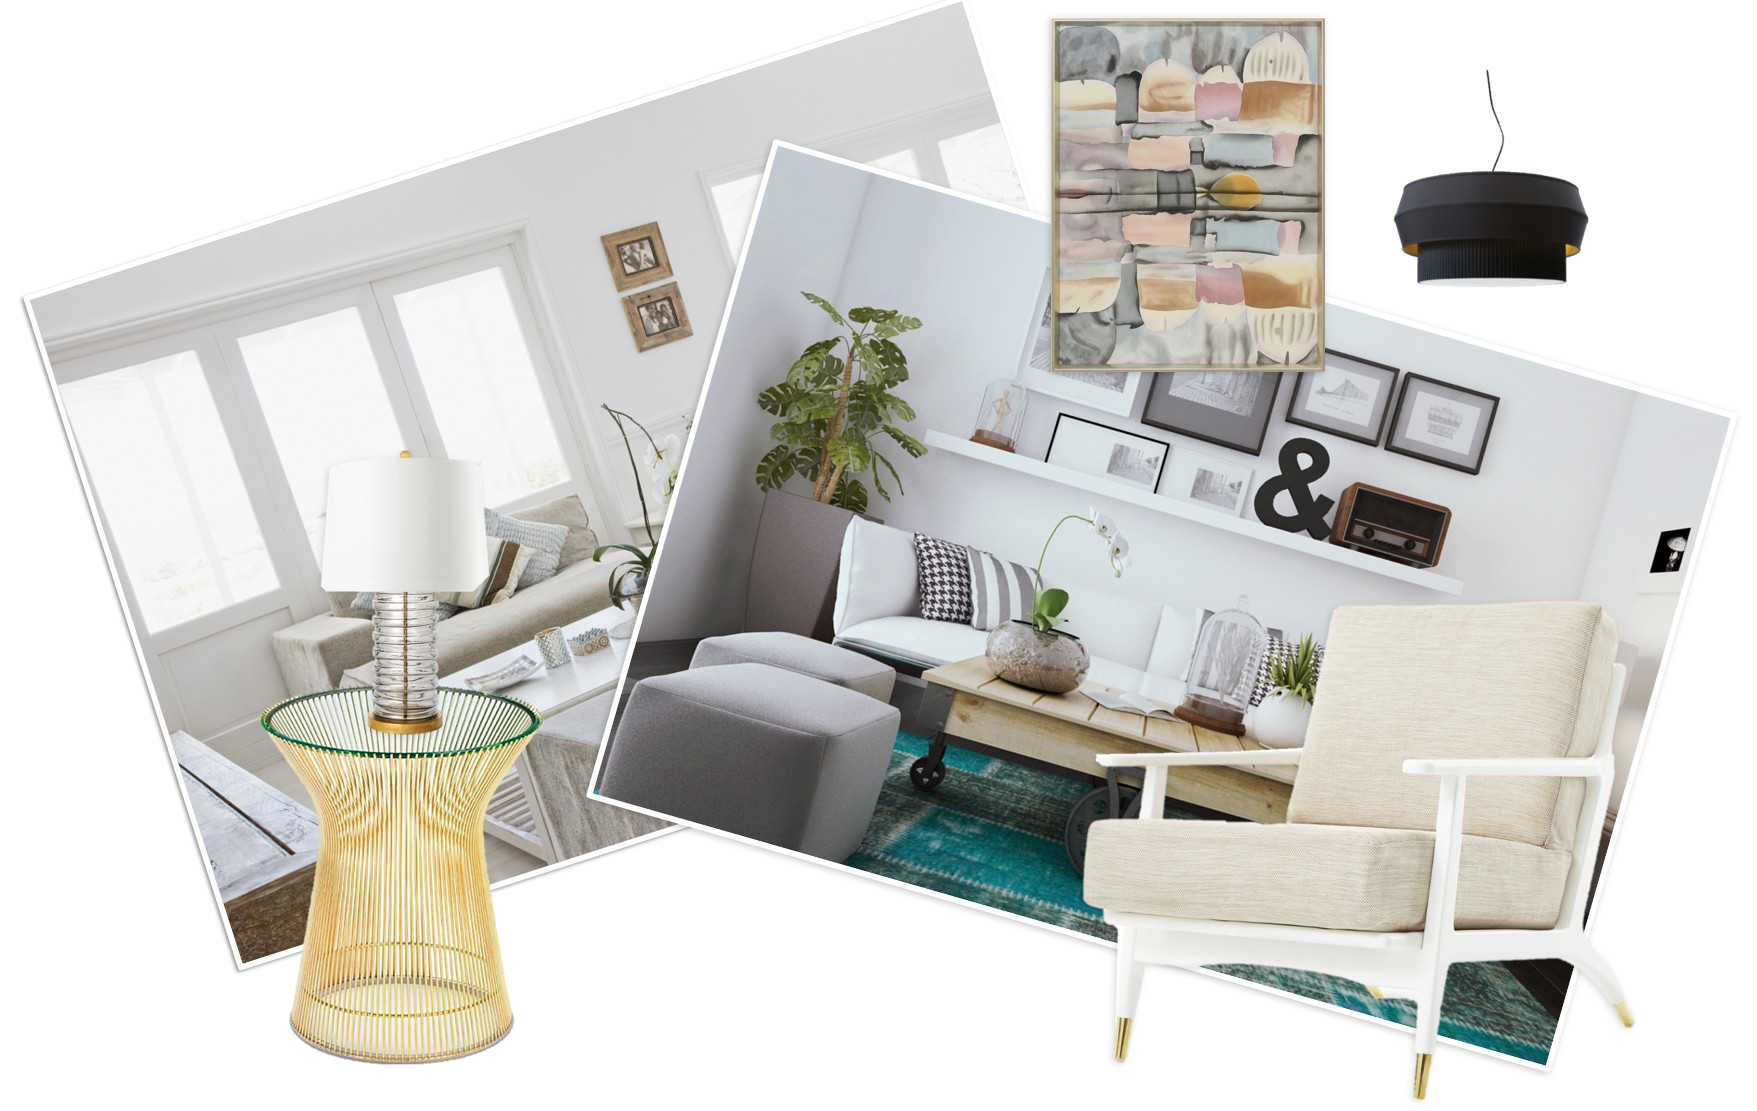 Win a $5,000 Design Your Dream Home Package